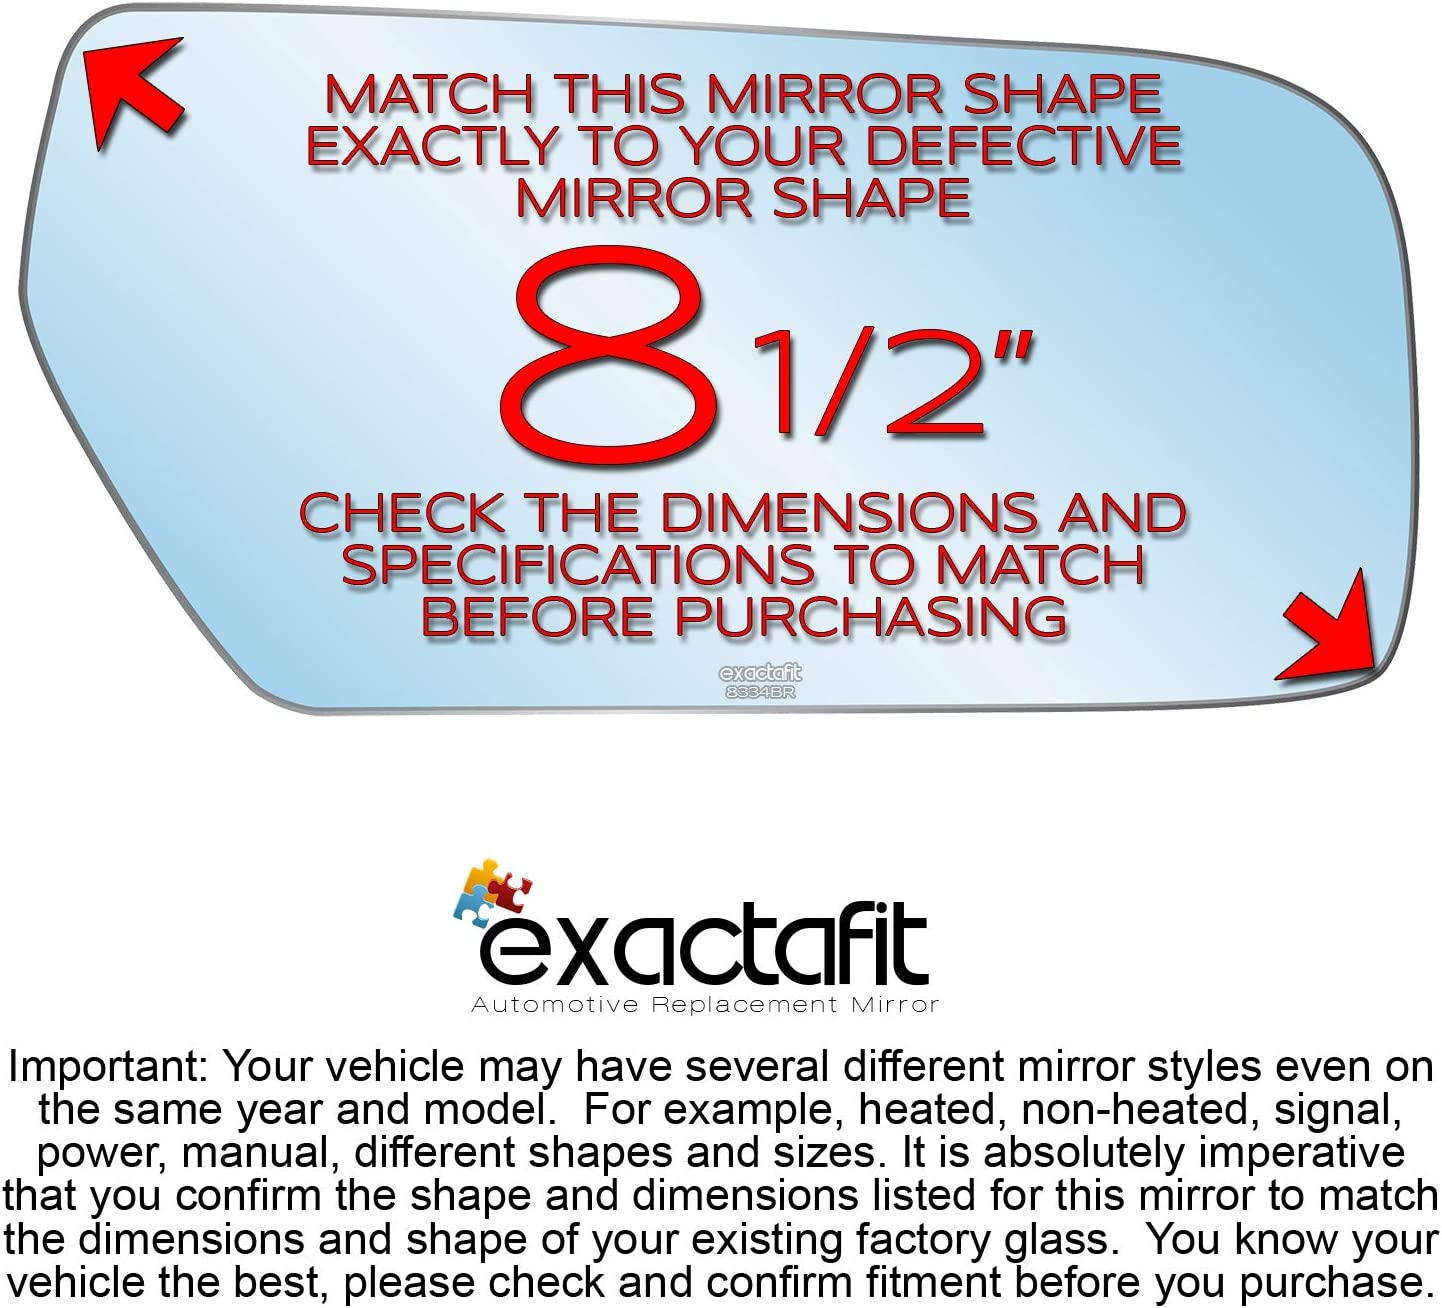 Driver Side Rear View Mirror Glass Replacement Left Hand Side Convex Fits 2003 2004 2005 2006 2007 Cadillac CTS by exactafit 8334R Adhesive Install LH